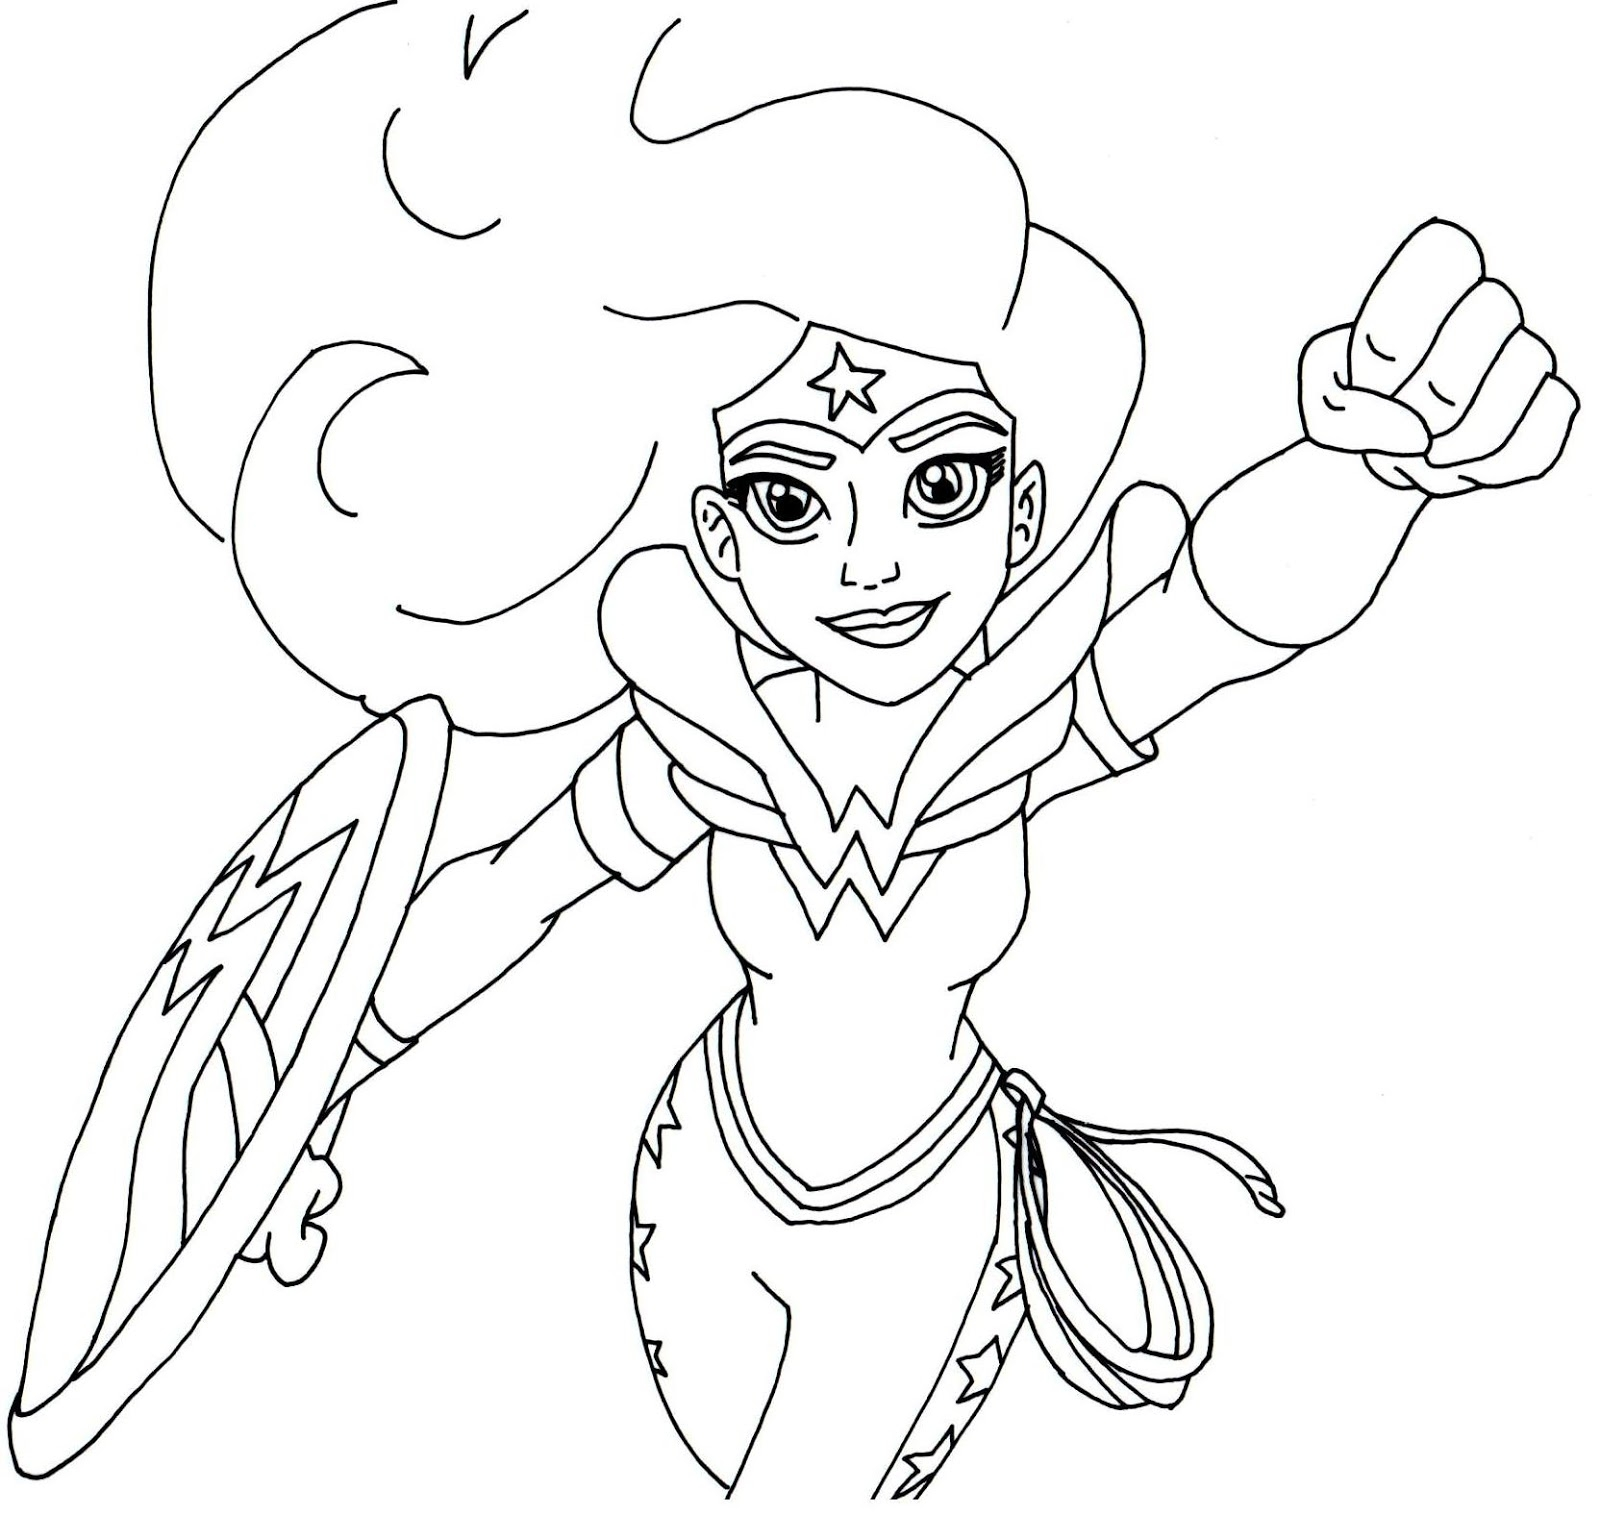 dc superhero coloring pages - dc superhero printable coloring pages sketch templates